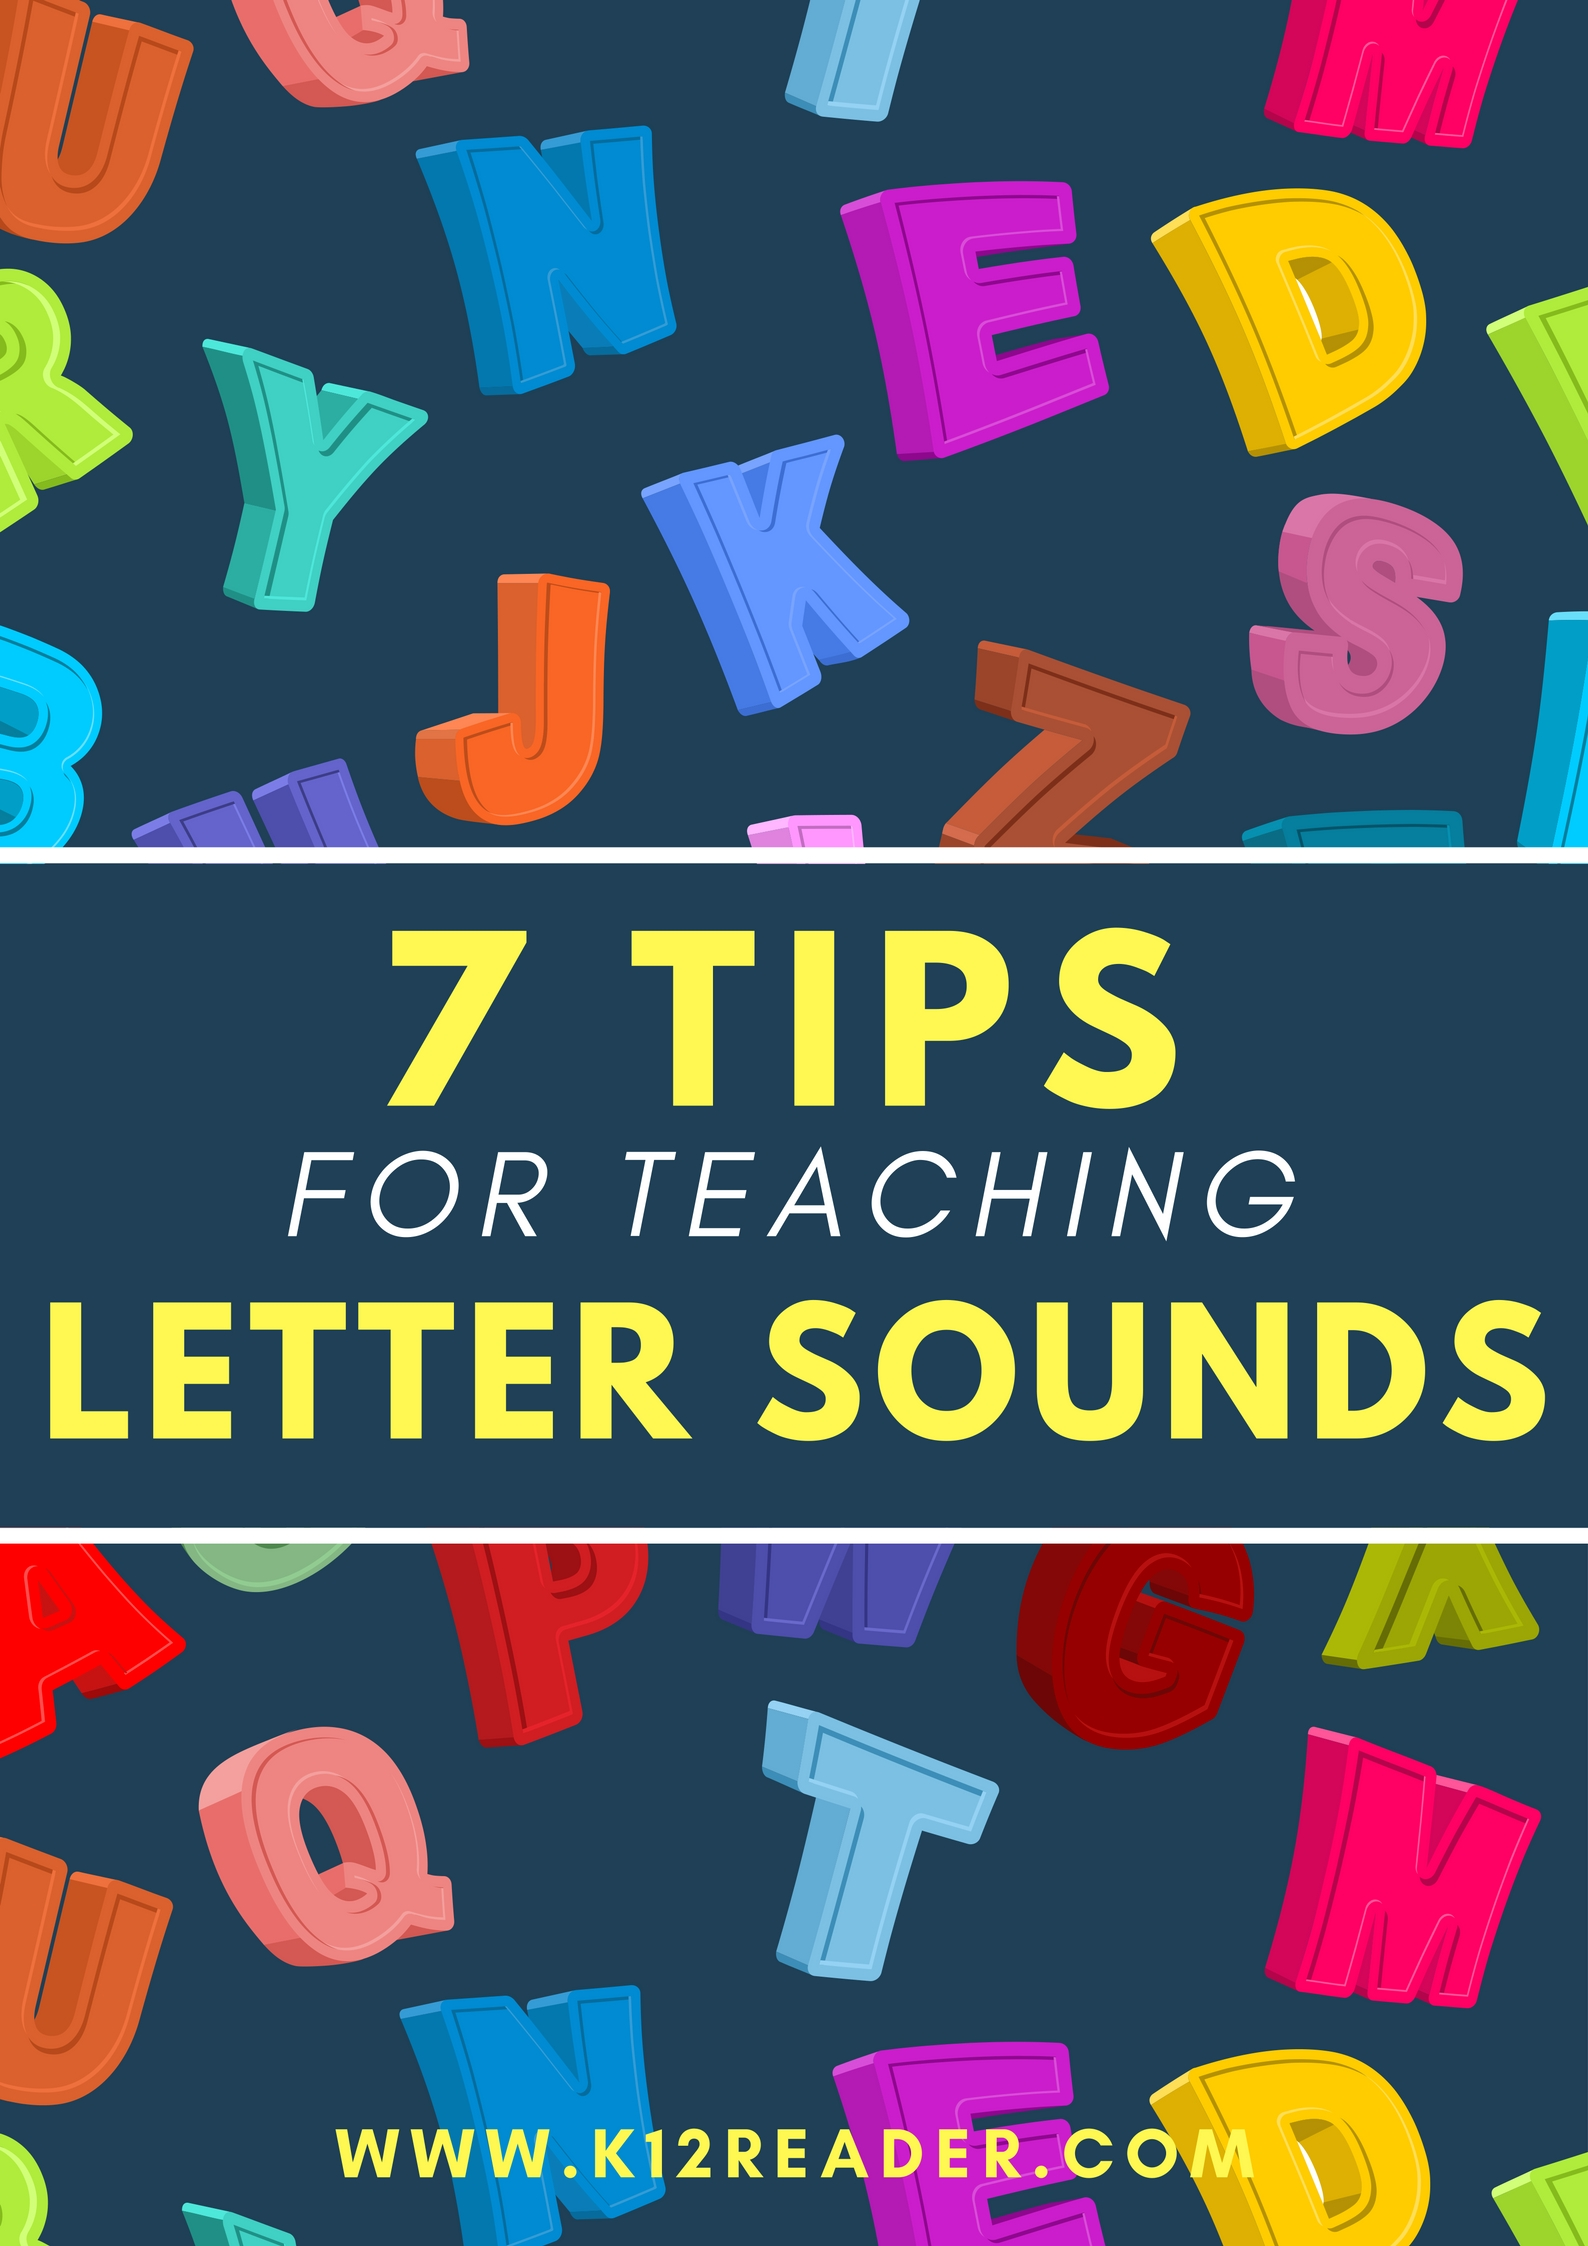 7 Tips For Teaching Letter Sounds